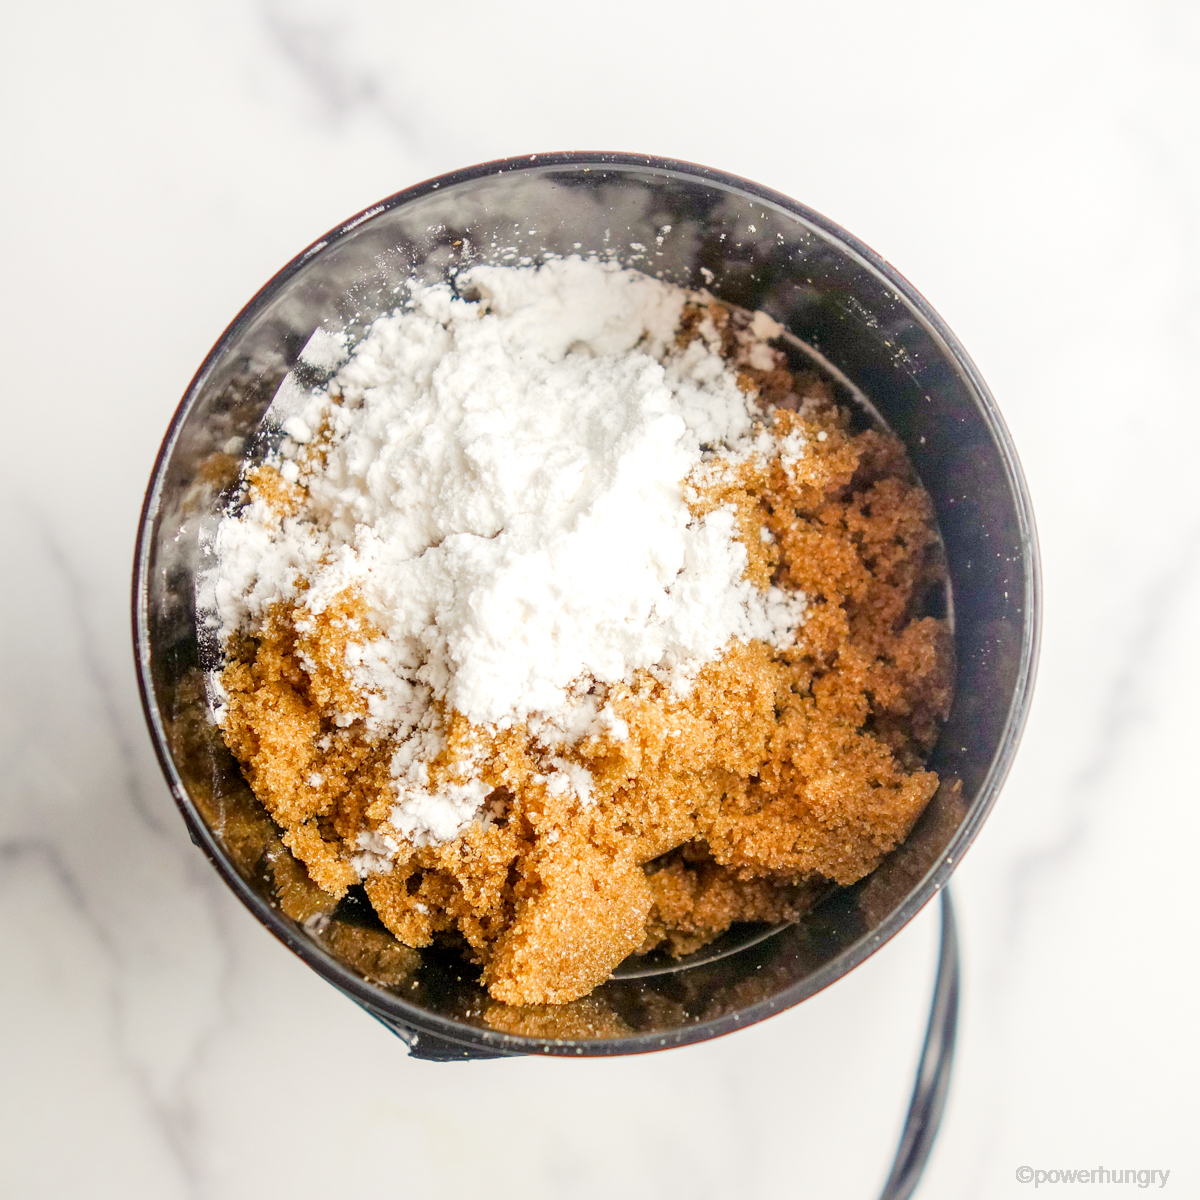 coffee grainder filled with coconut sugar and tapioca starch